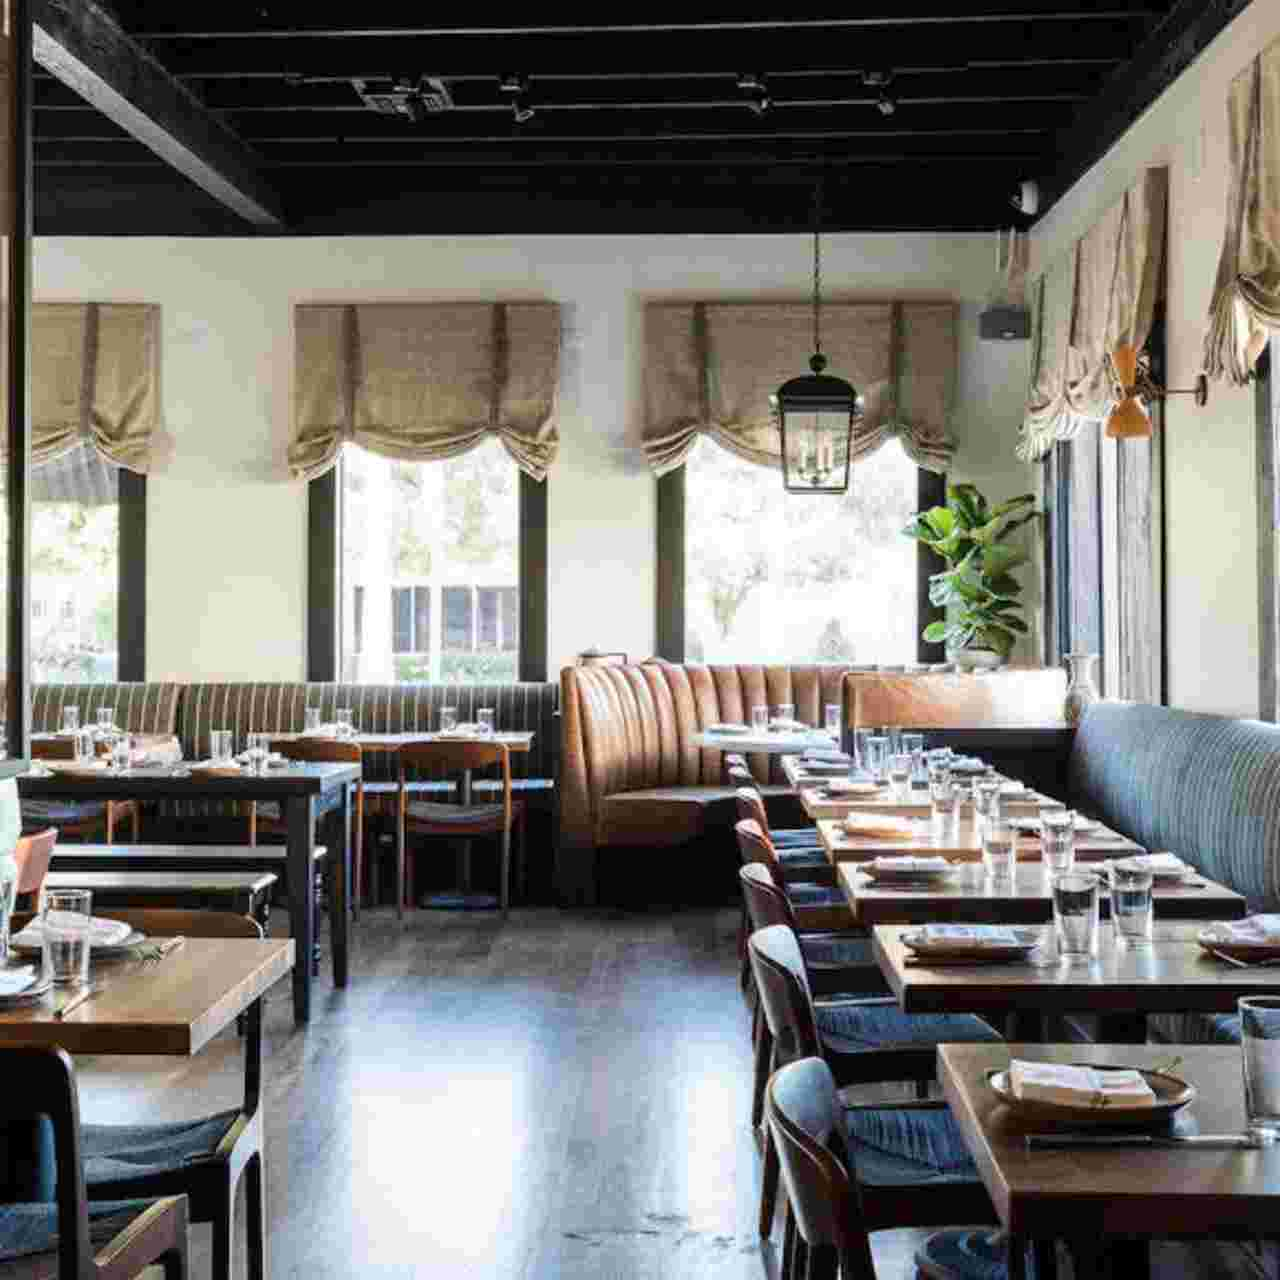 First Look: Evan Funke's Felix Trattoria Is a Pasta Haven in Venice